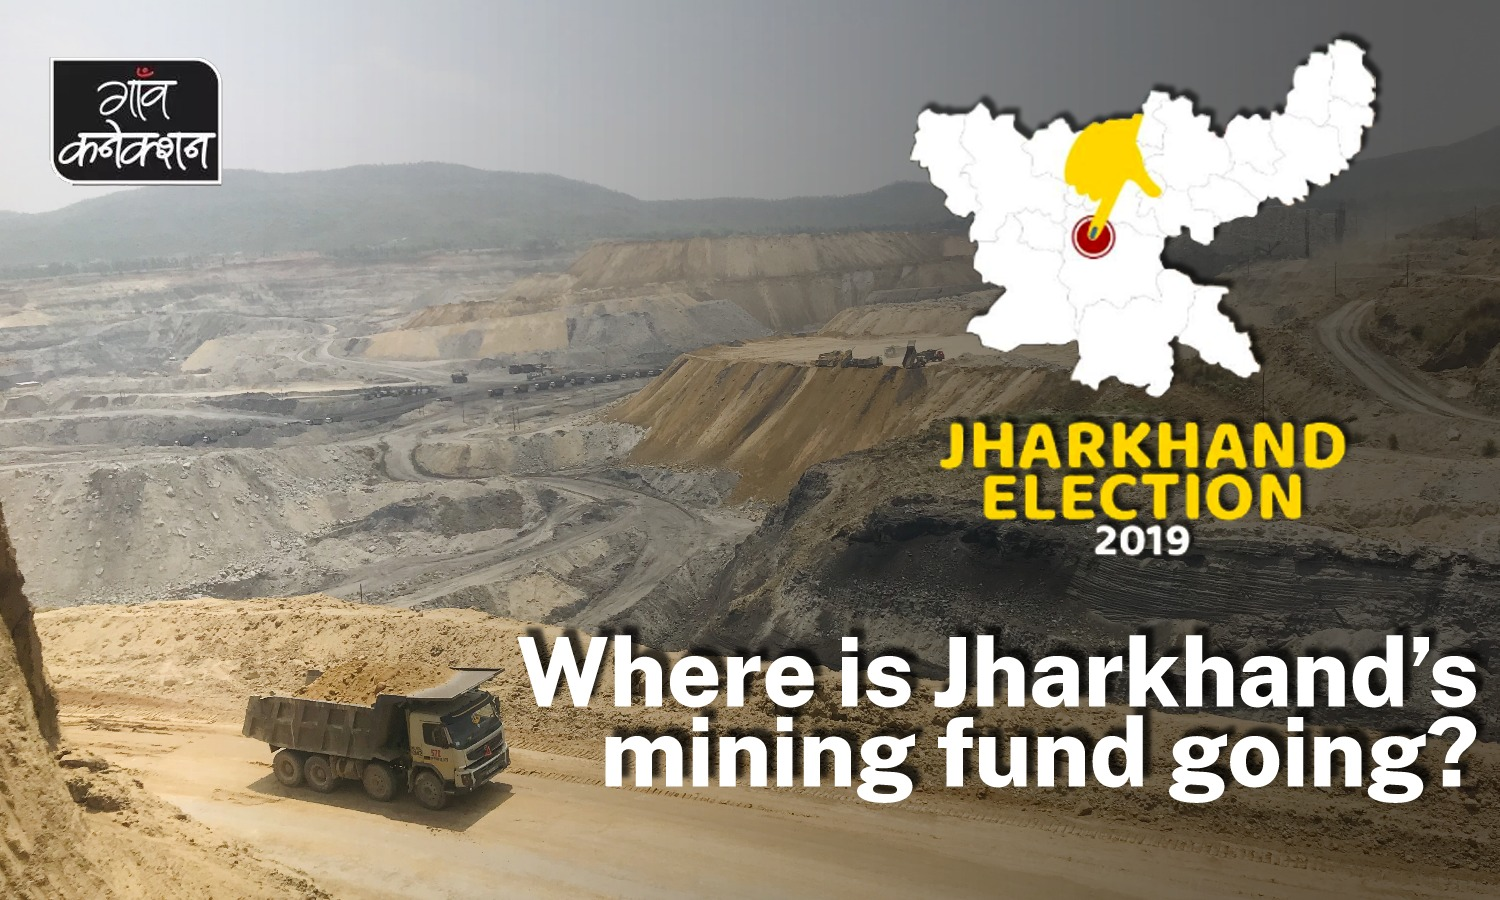 Jharkhand has Rs 4,718 crore fund for mining-affected communities. But, more than half the money is unspent.